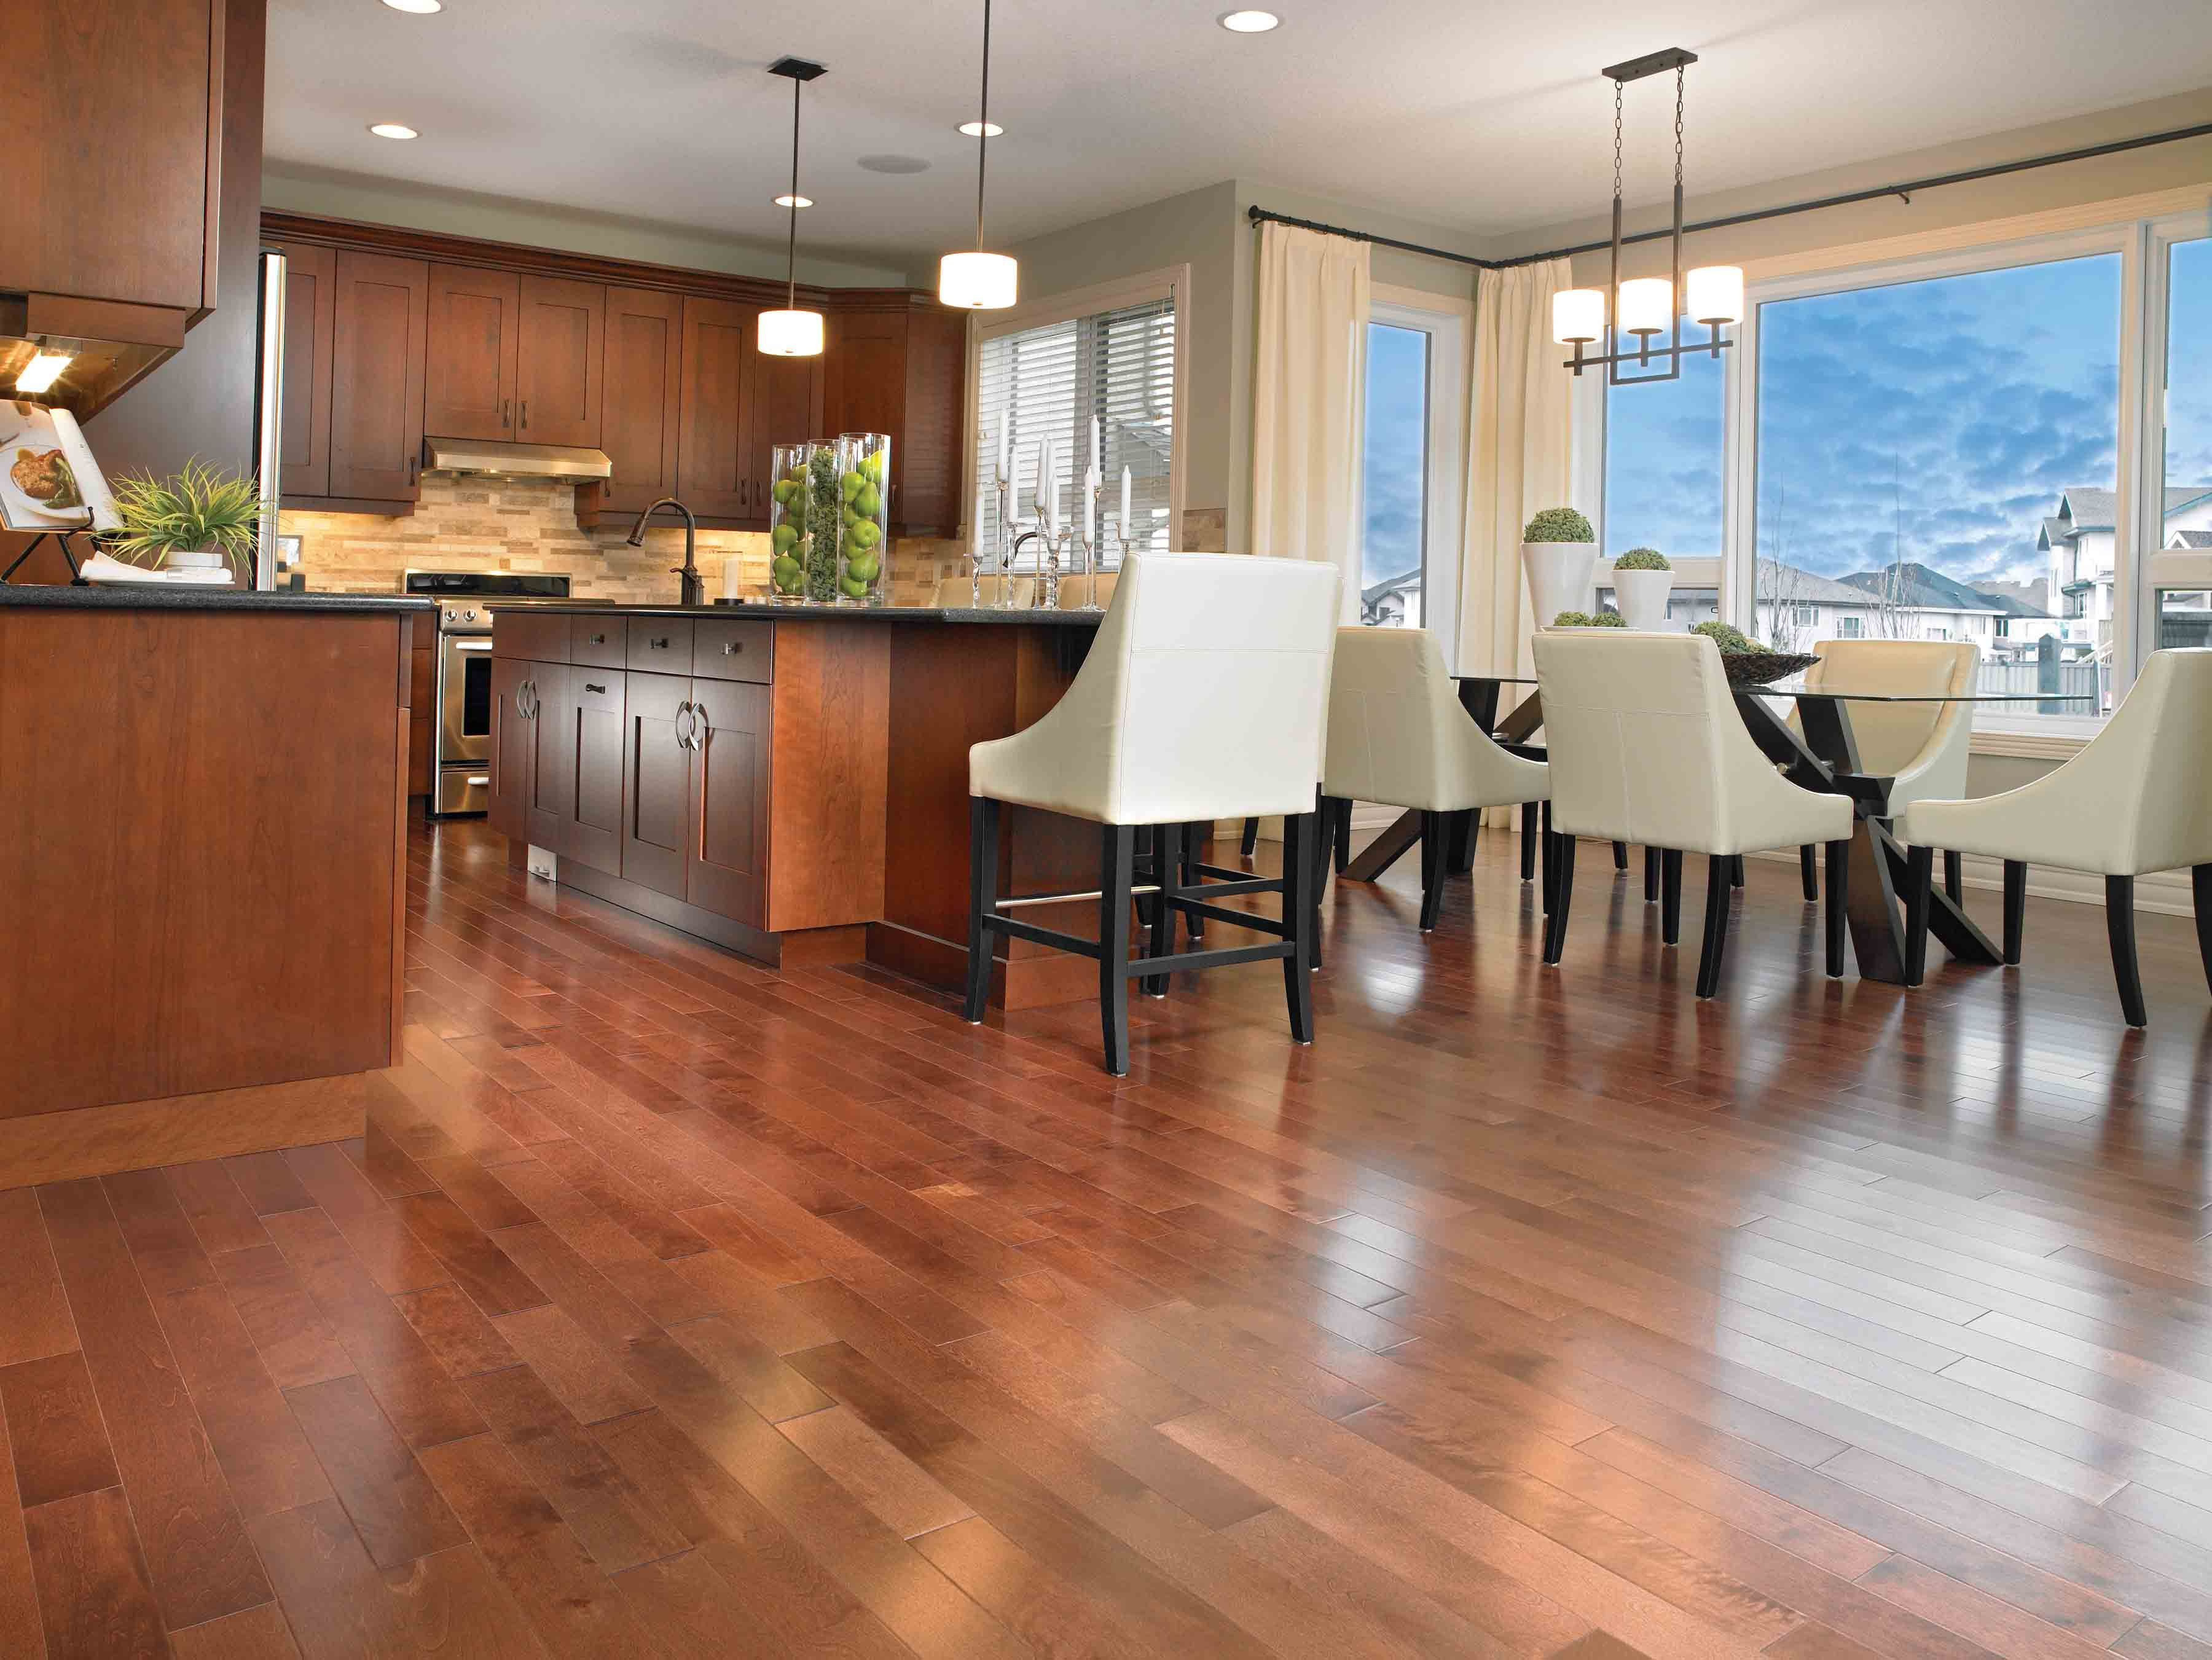 high quality hardwood flooring of best plywood for flooring lovely how to resurface hardwood floors for best plywood for flooring fresh 25 best prefinished hardwood flooring pinterest concept of best plywood for